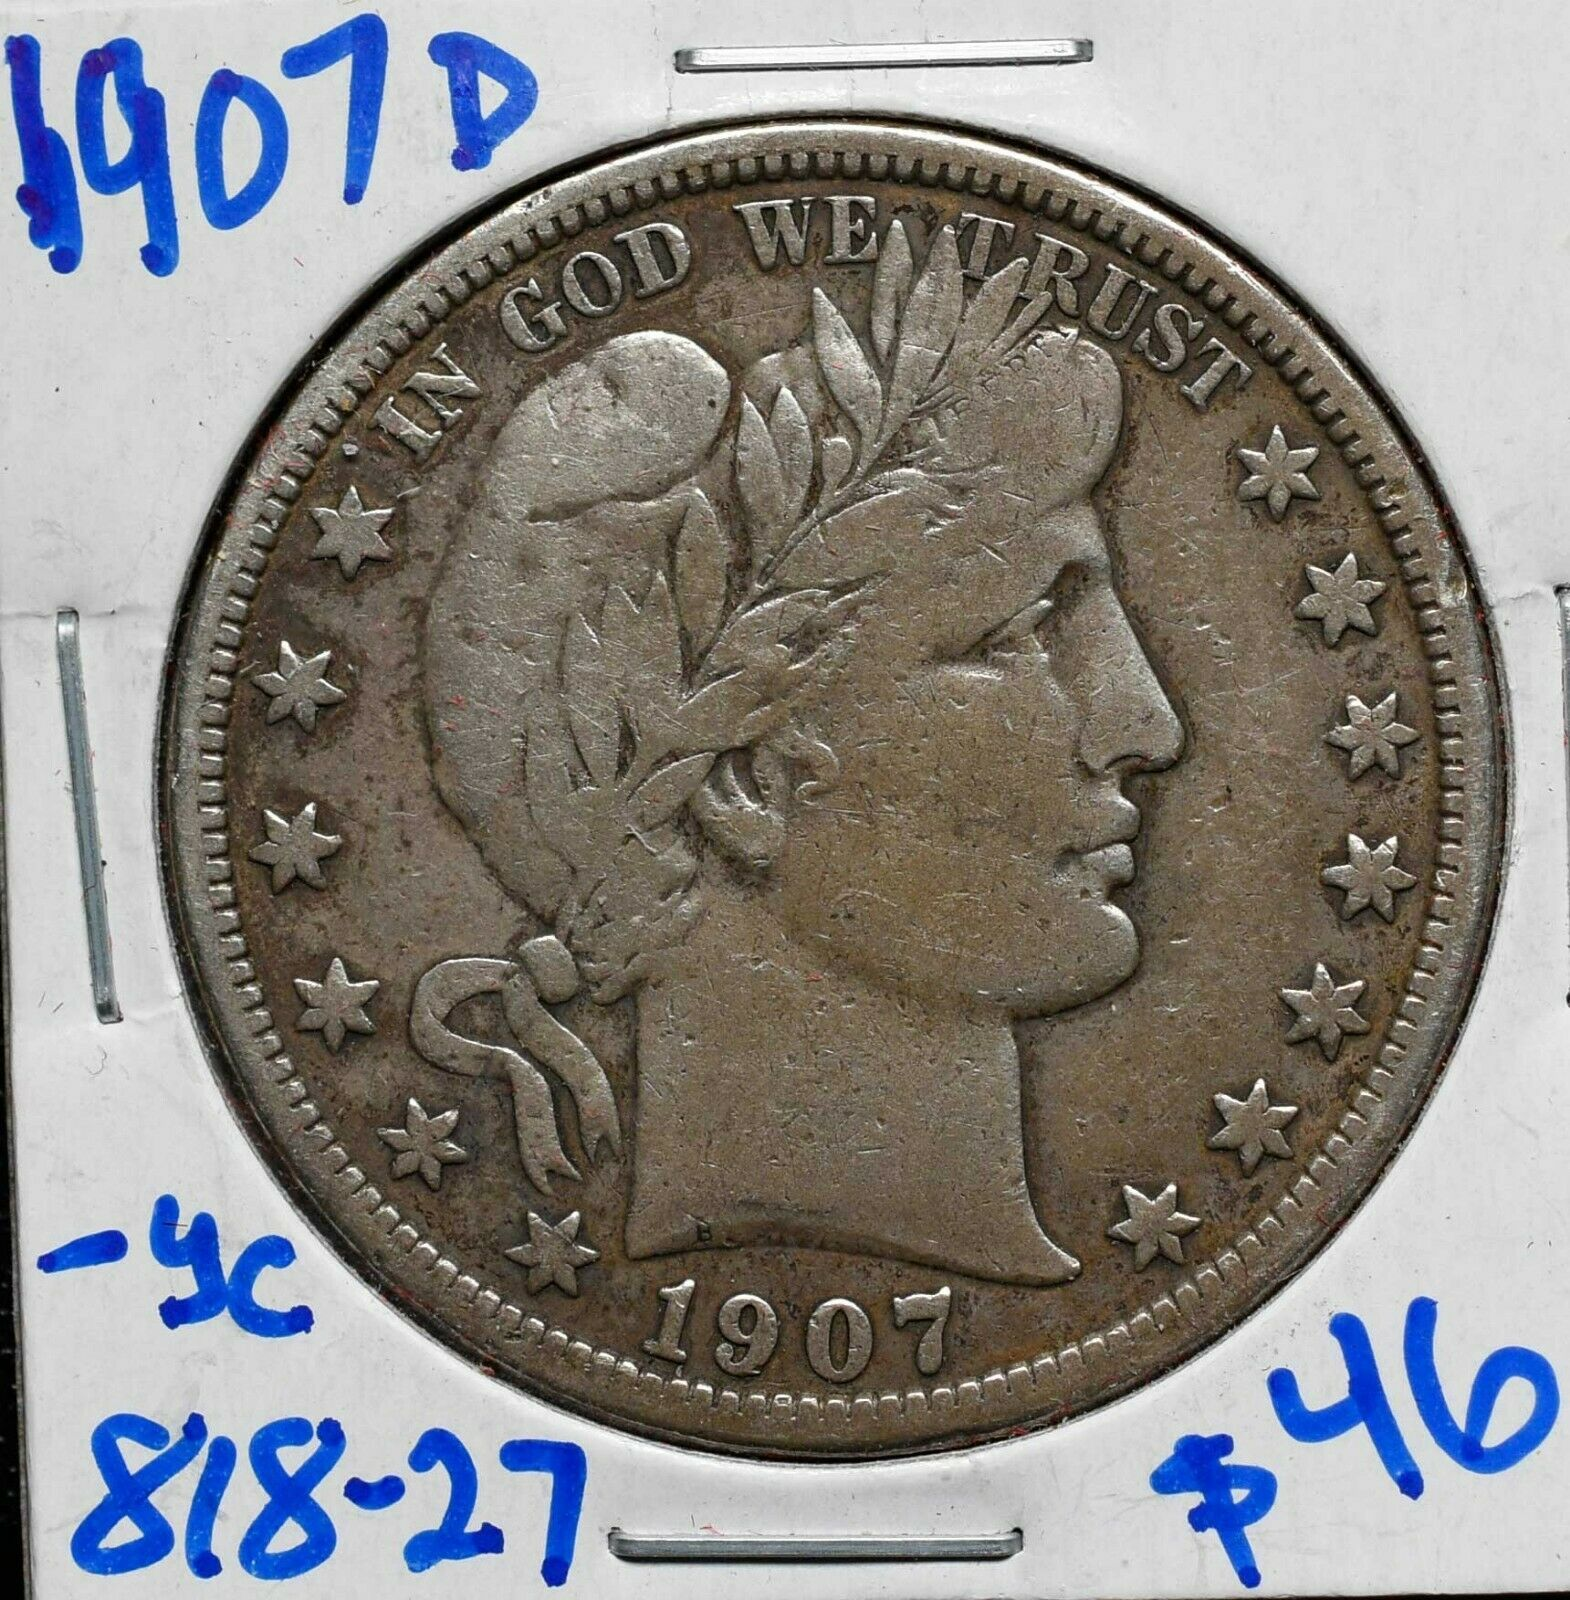 1907D Silver Barber Half Dollar 50¢ Coin Lot# 818-27